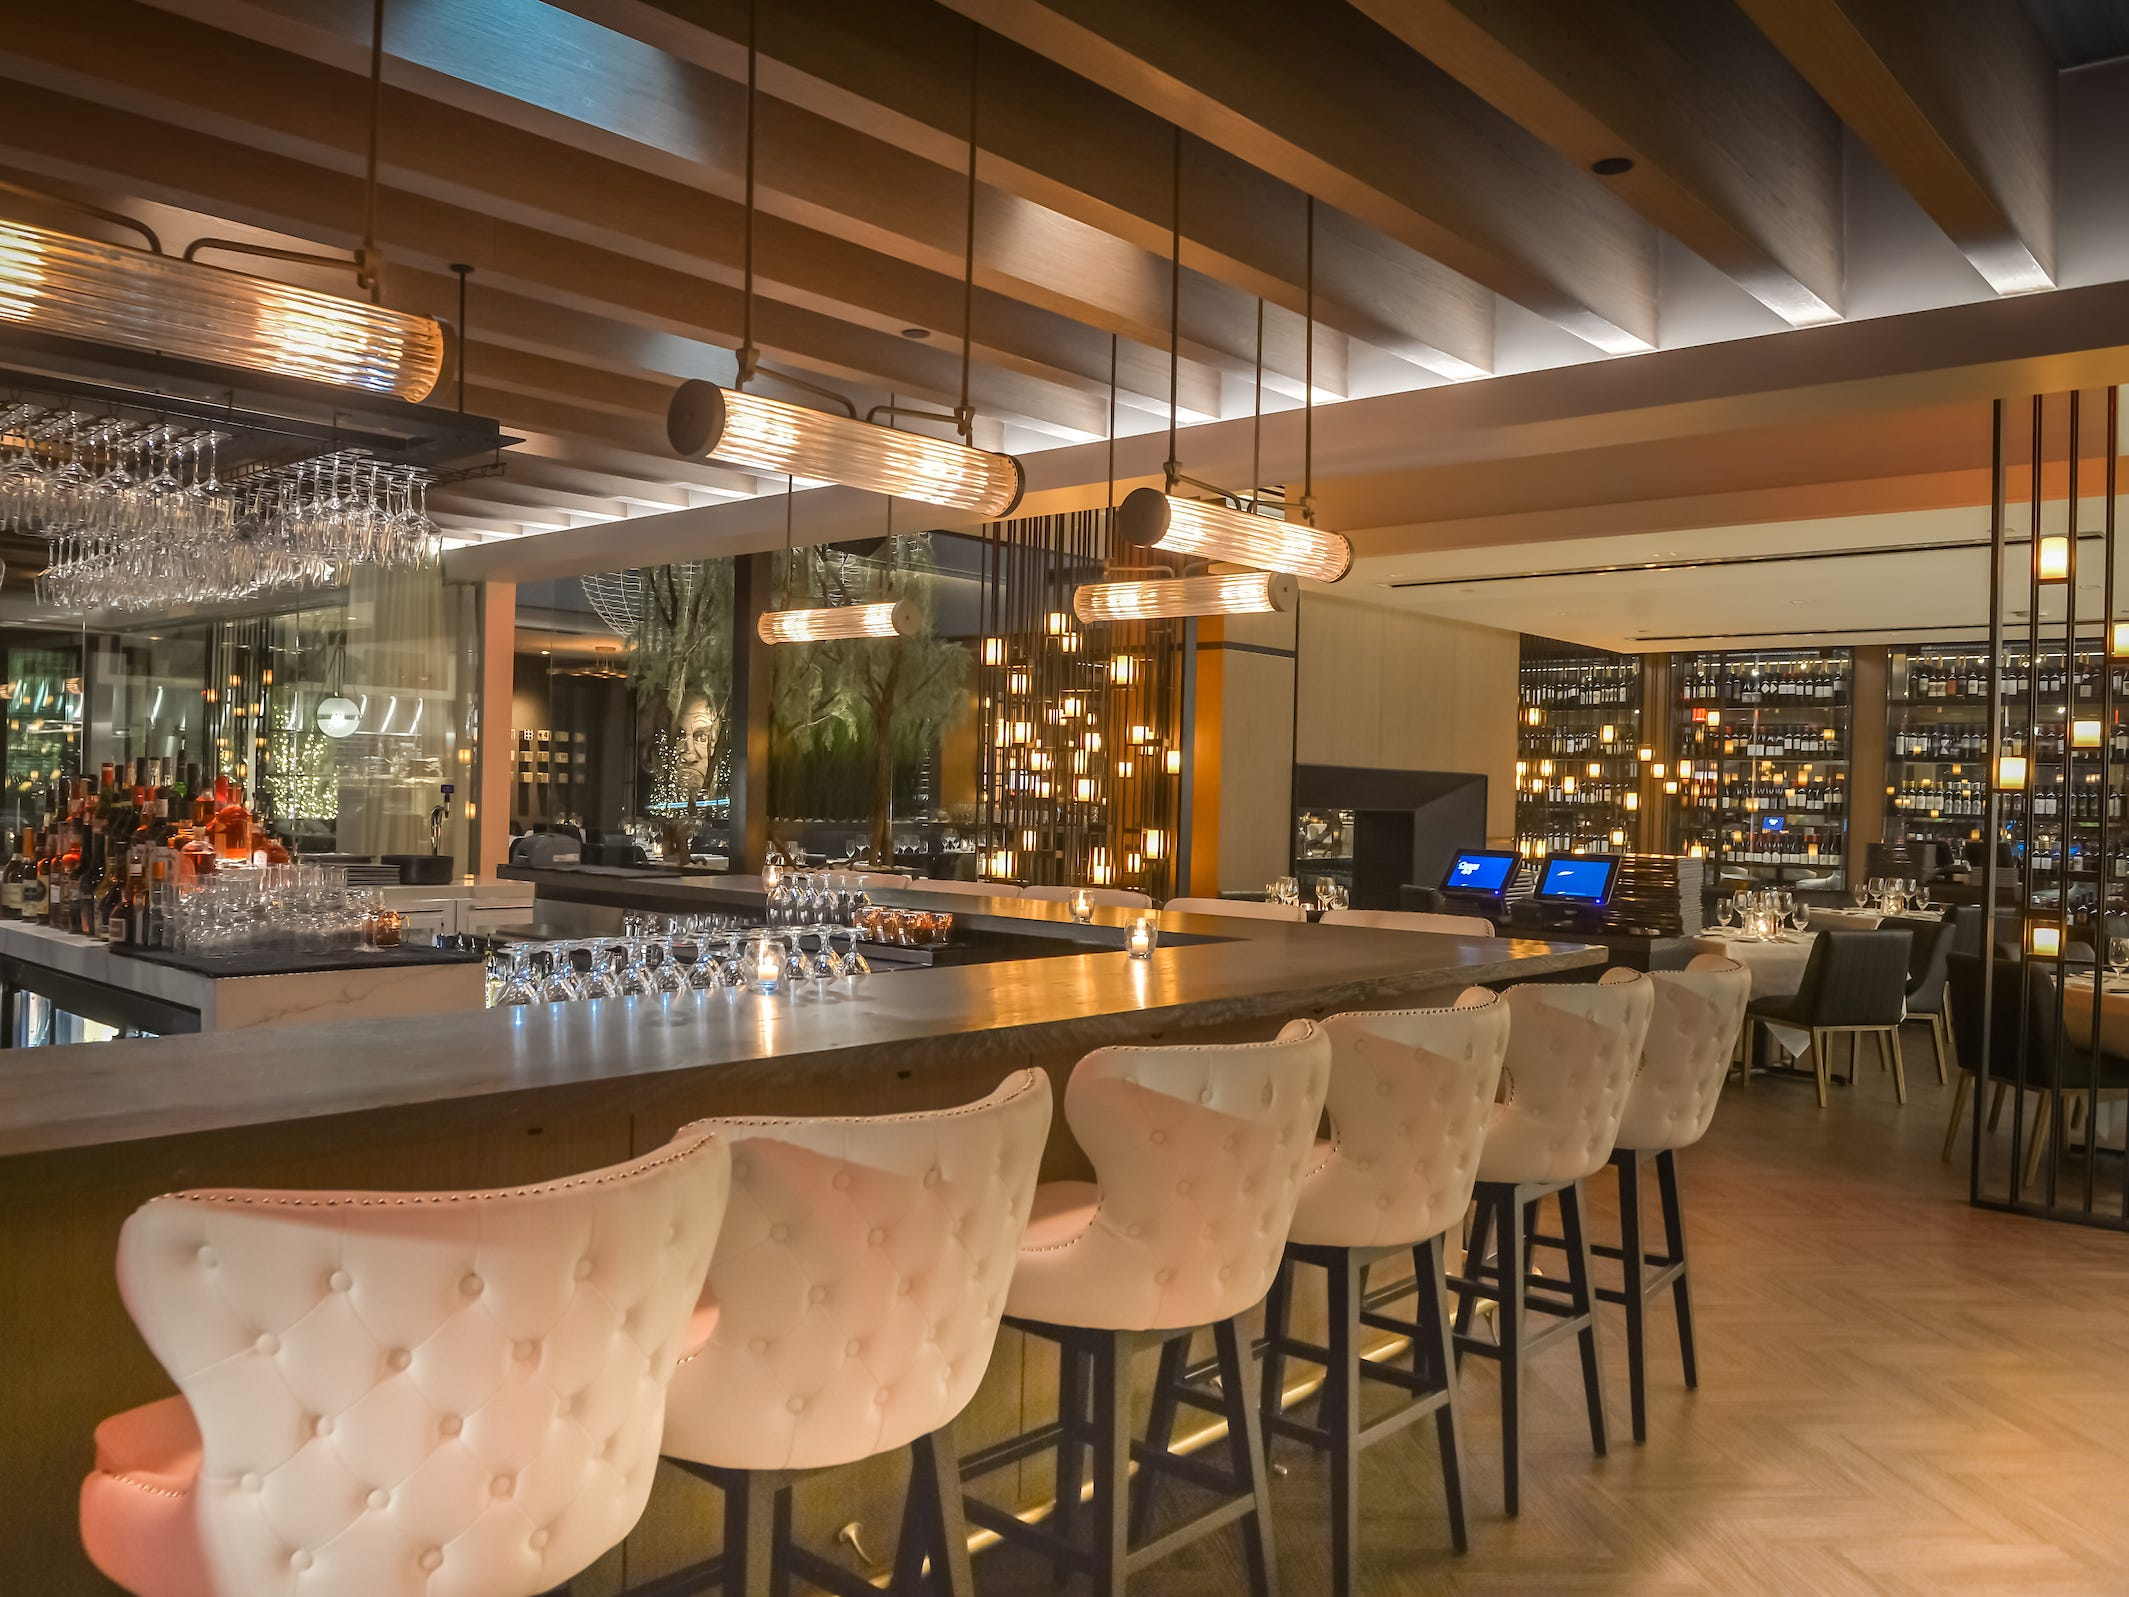 Another view of the bar inside Ocean 44 in Scottsdale.